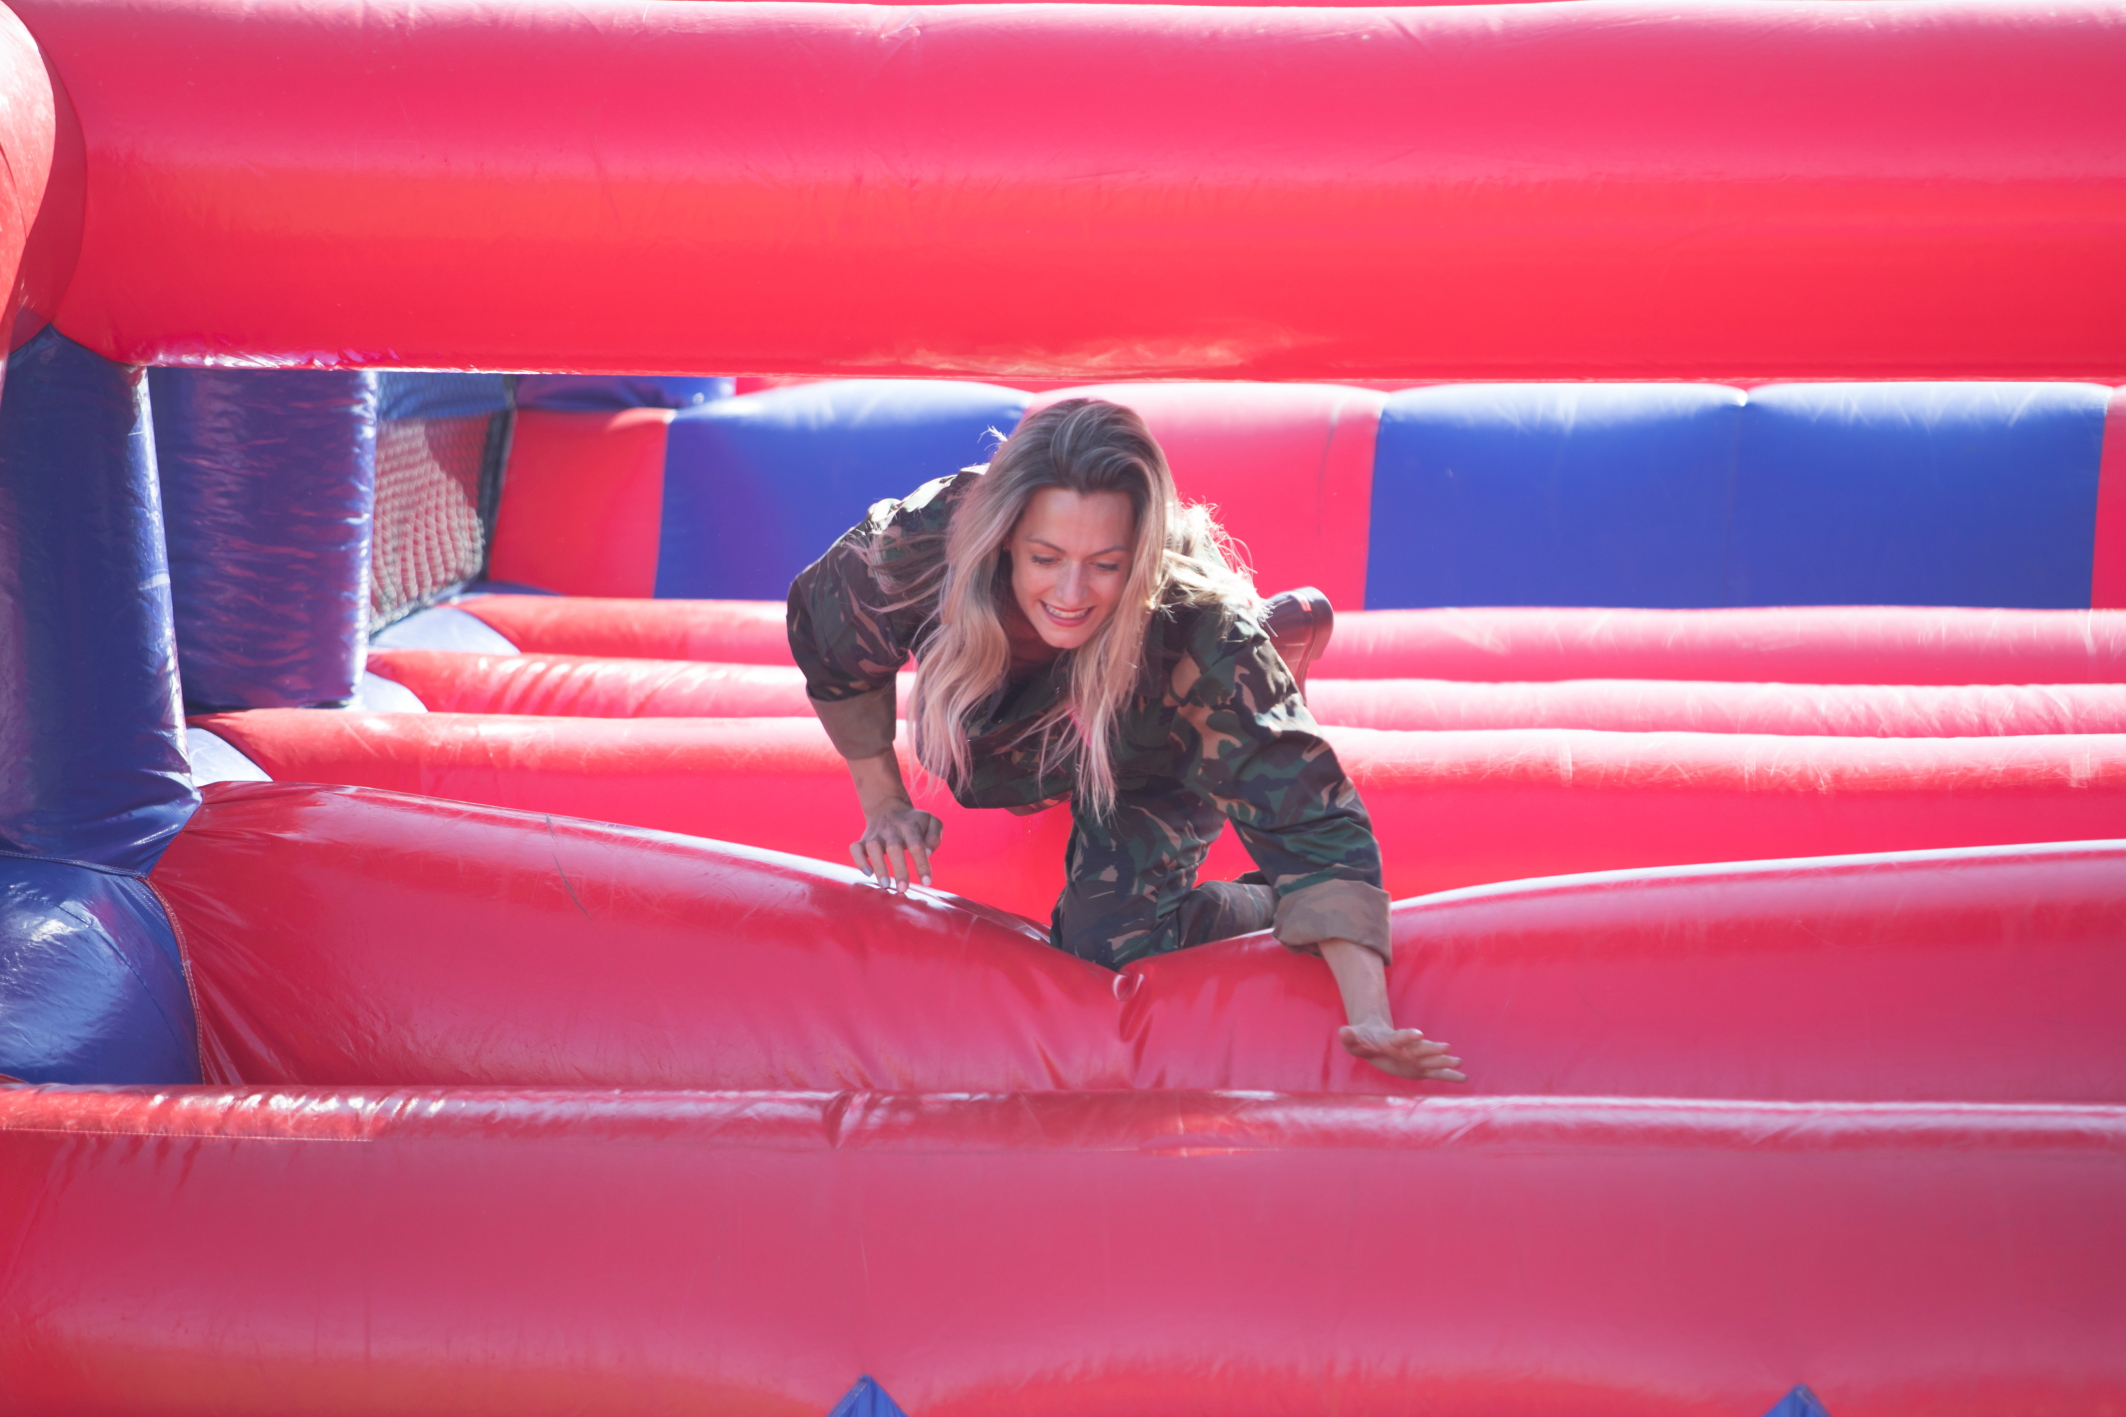 A determined woman crawls through a giant inflatable obstacle course